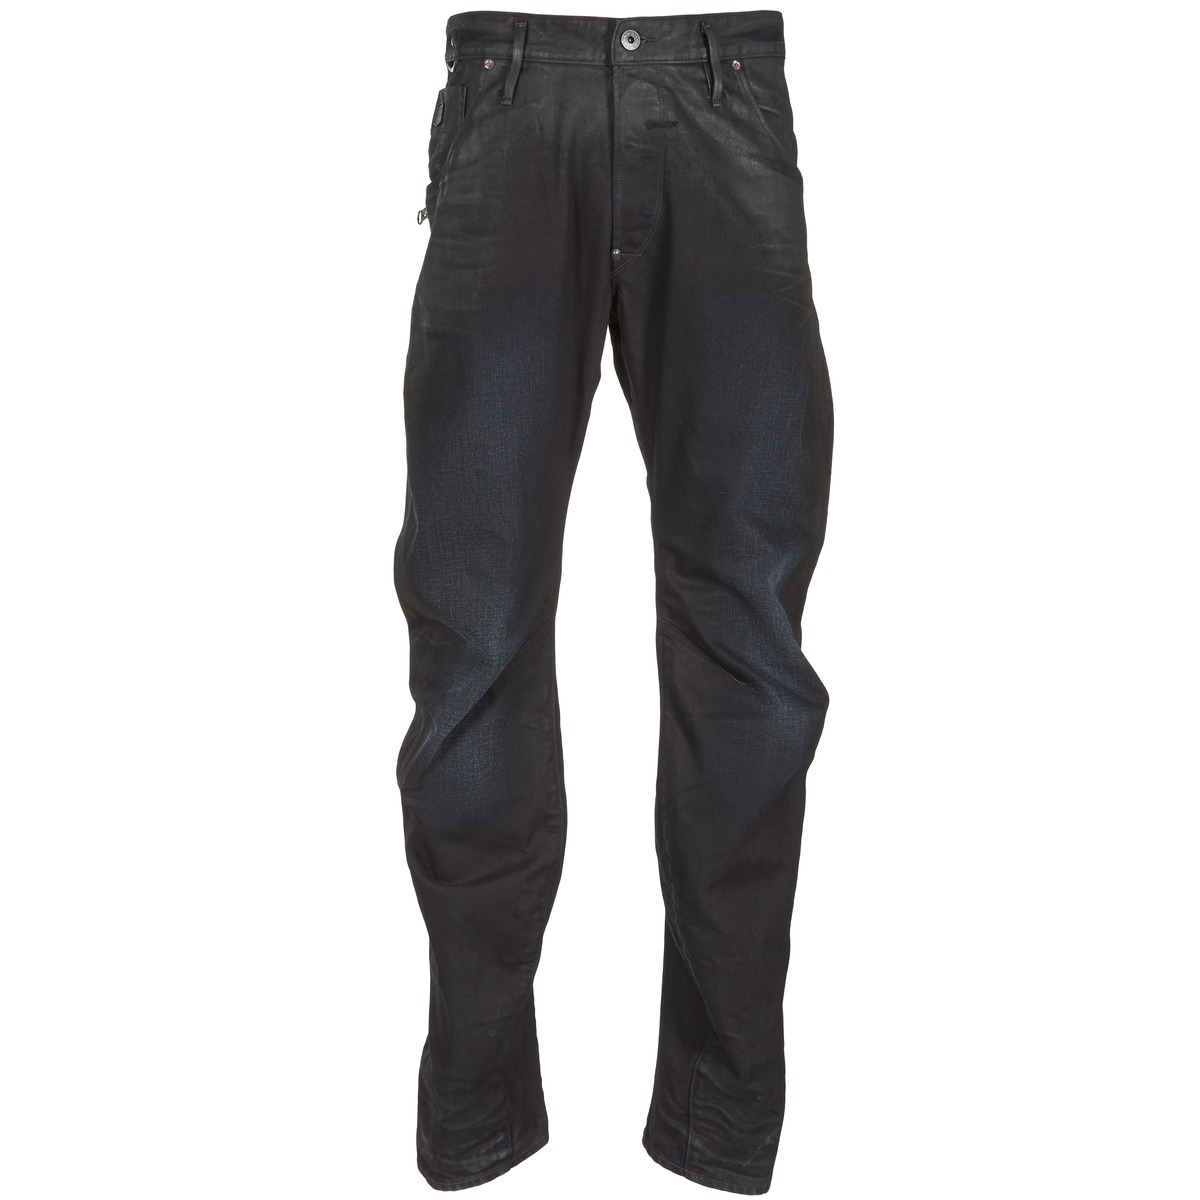 G-Star Raw NEW ARC ZIP 3D Noir